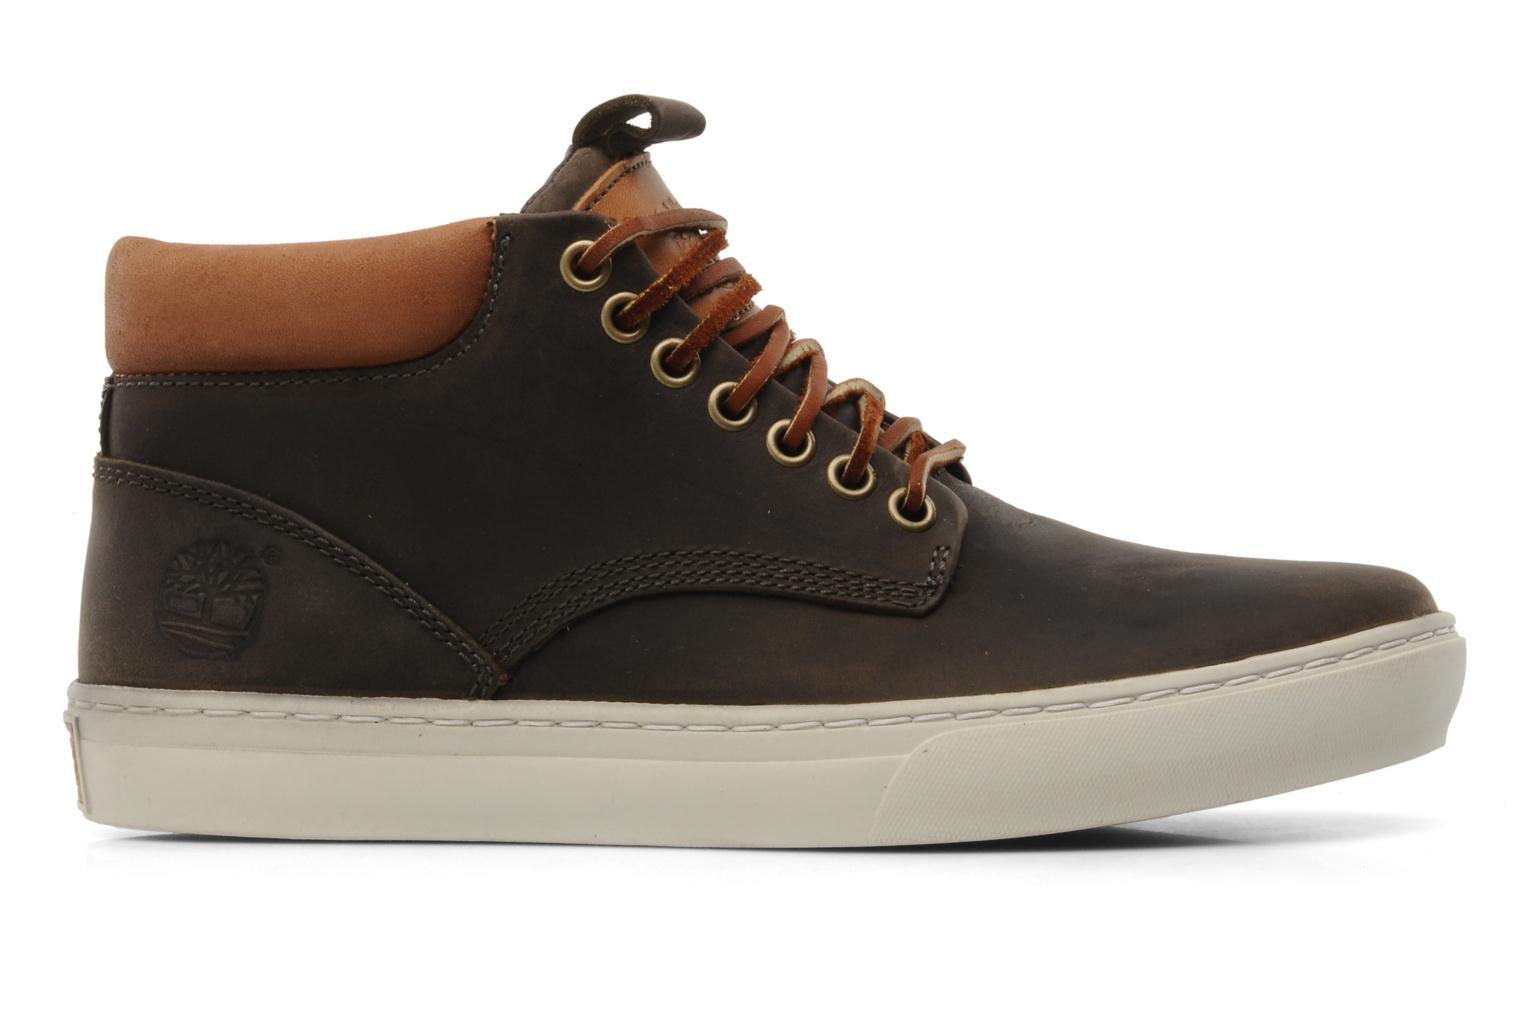 Earthkeepers 2.0 Cupsole Chukka Dark Olive Roughcut